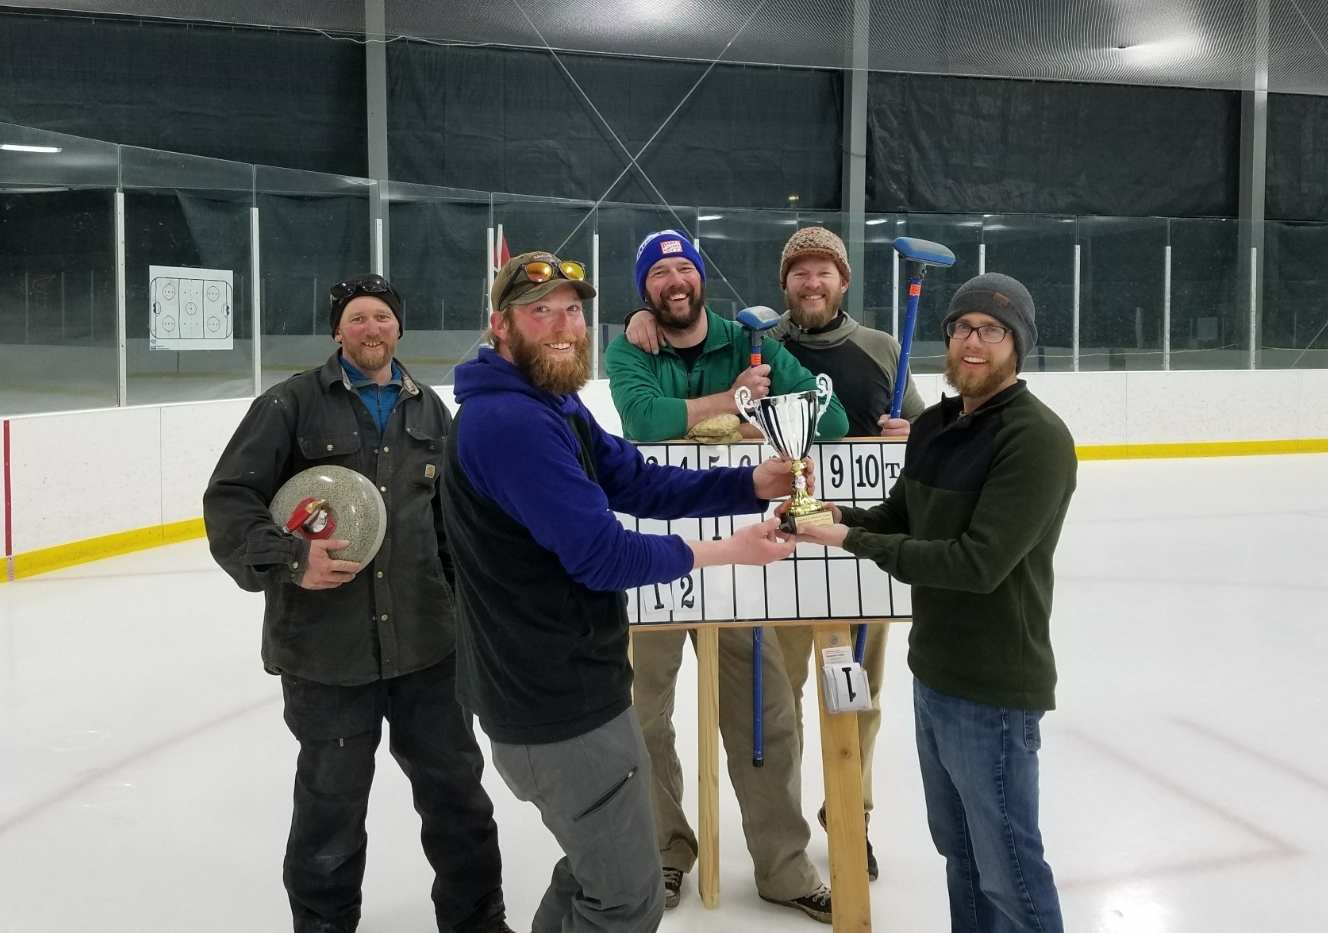 2016 Fall Curling Champions